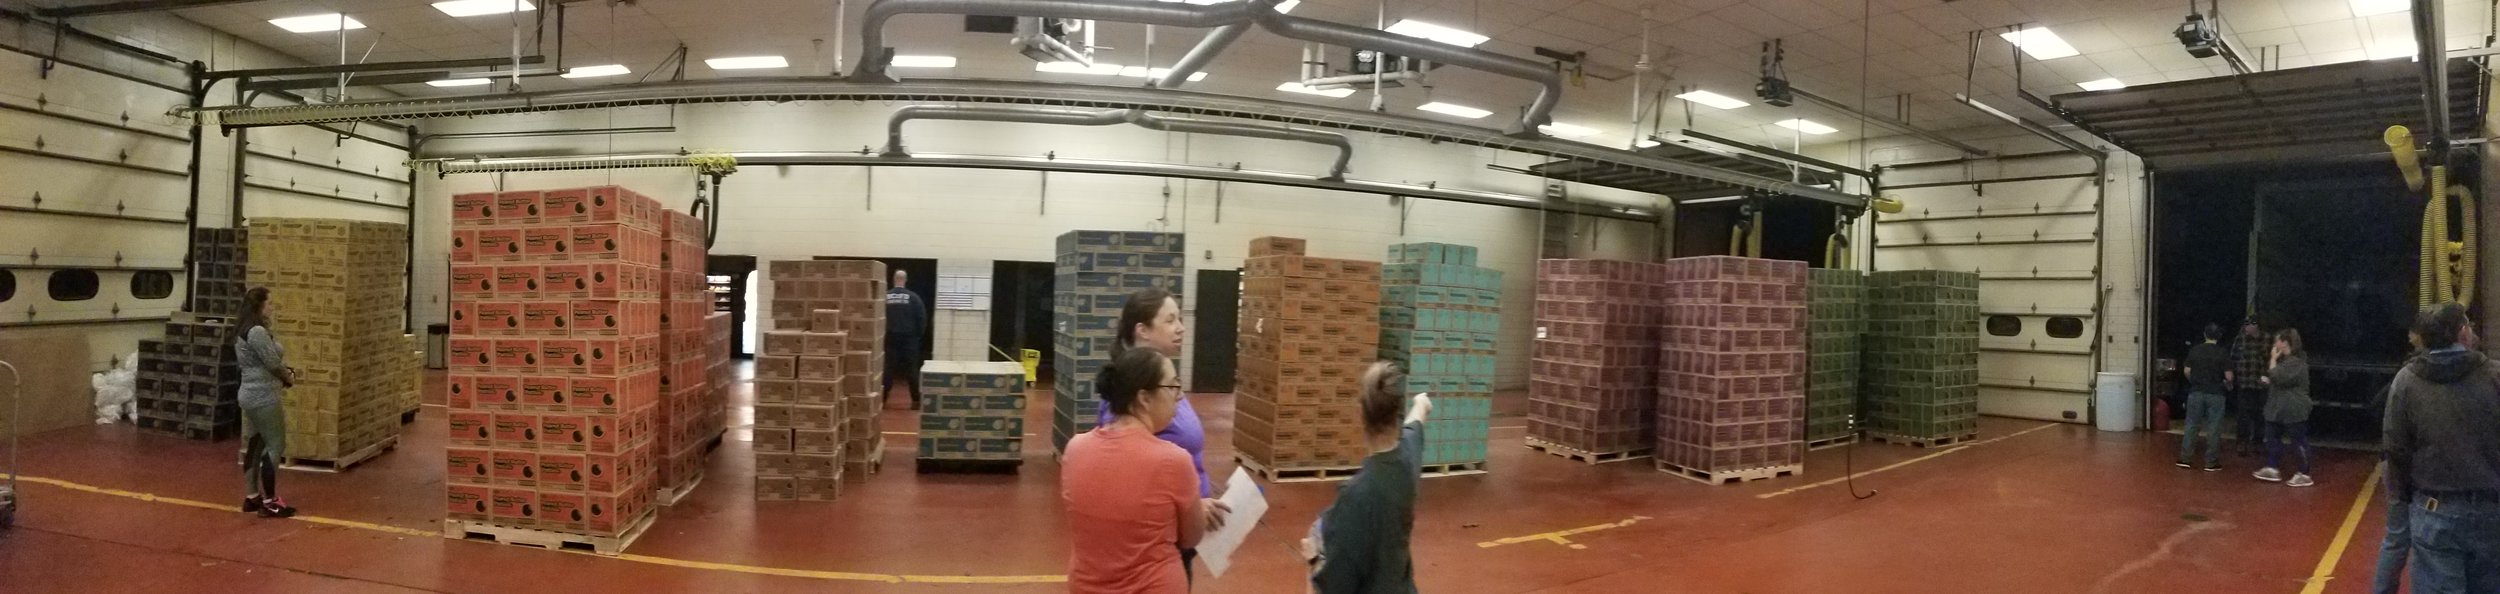 Helping sort and pack thousands of boxes of Girl Scout Cookies at our local fire station at 5am.